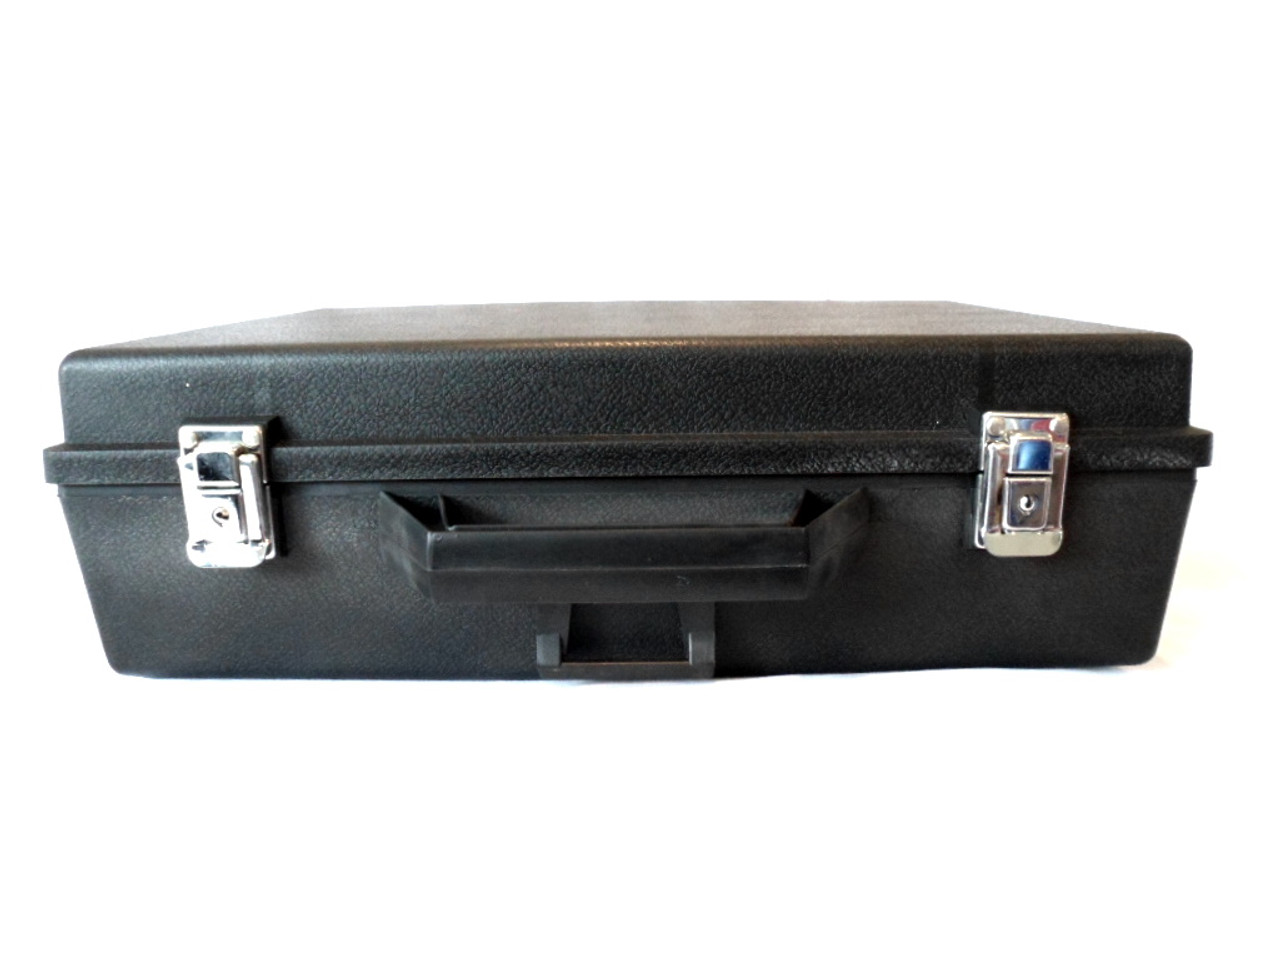 Nonfango Hard Suitcase, Touring Luggage,  Storage Compartment - Fully Portable